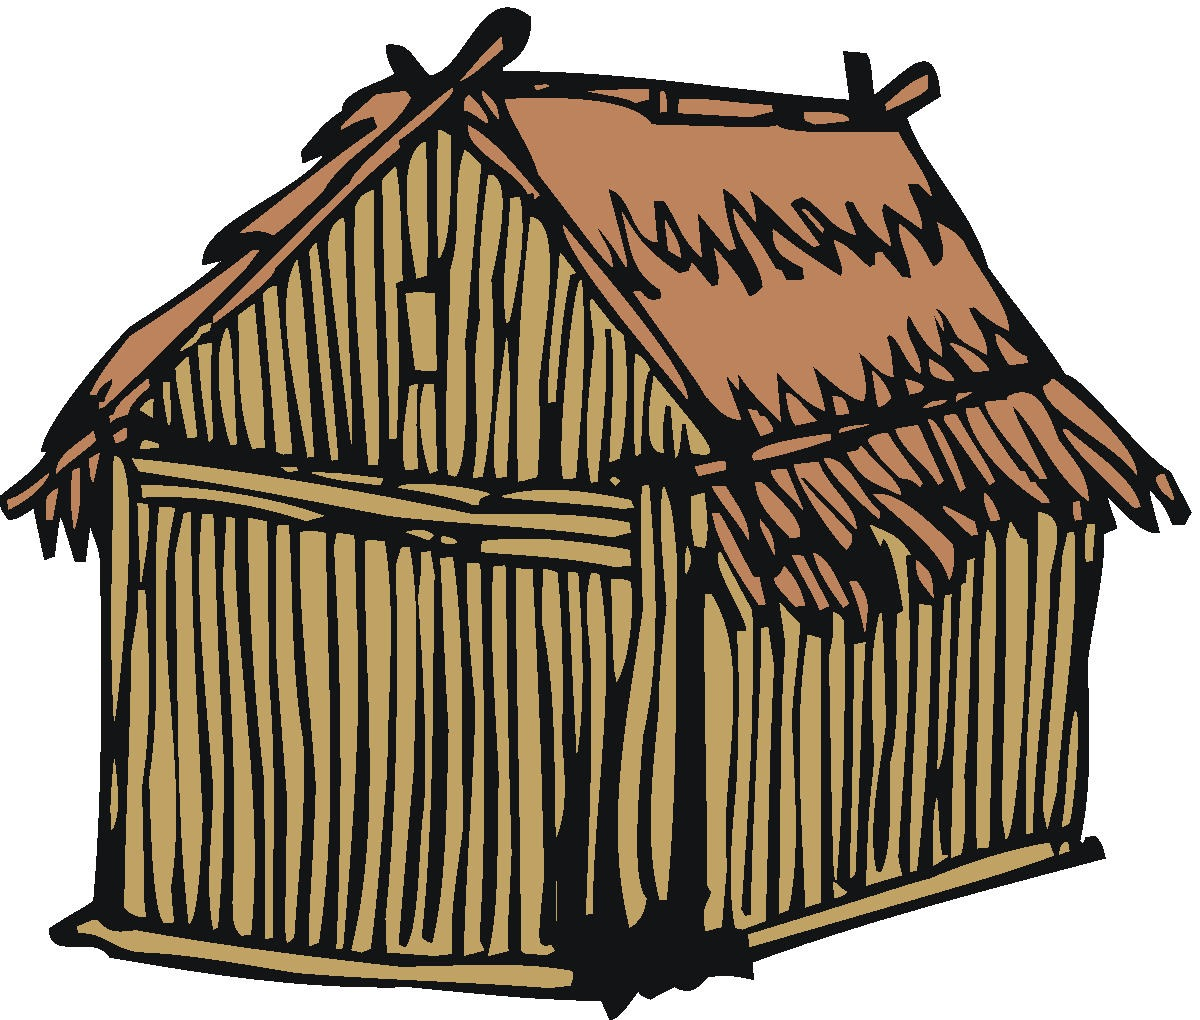 Hut clipart 5 » Clipart Station.